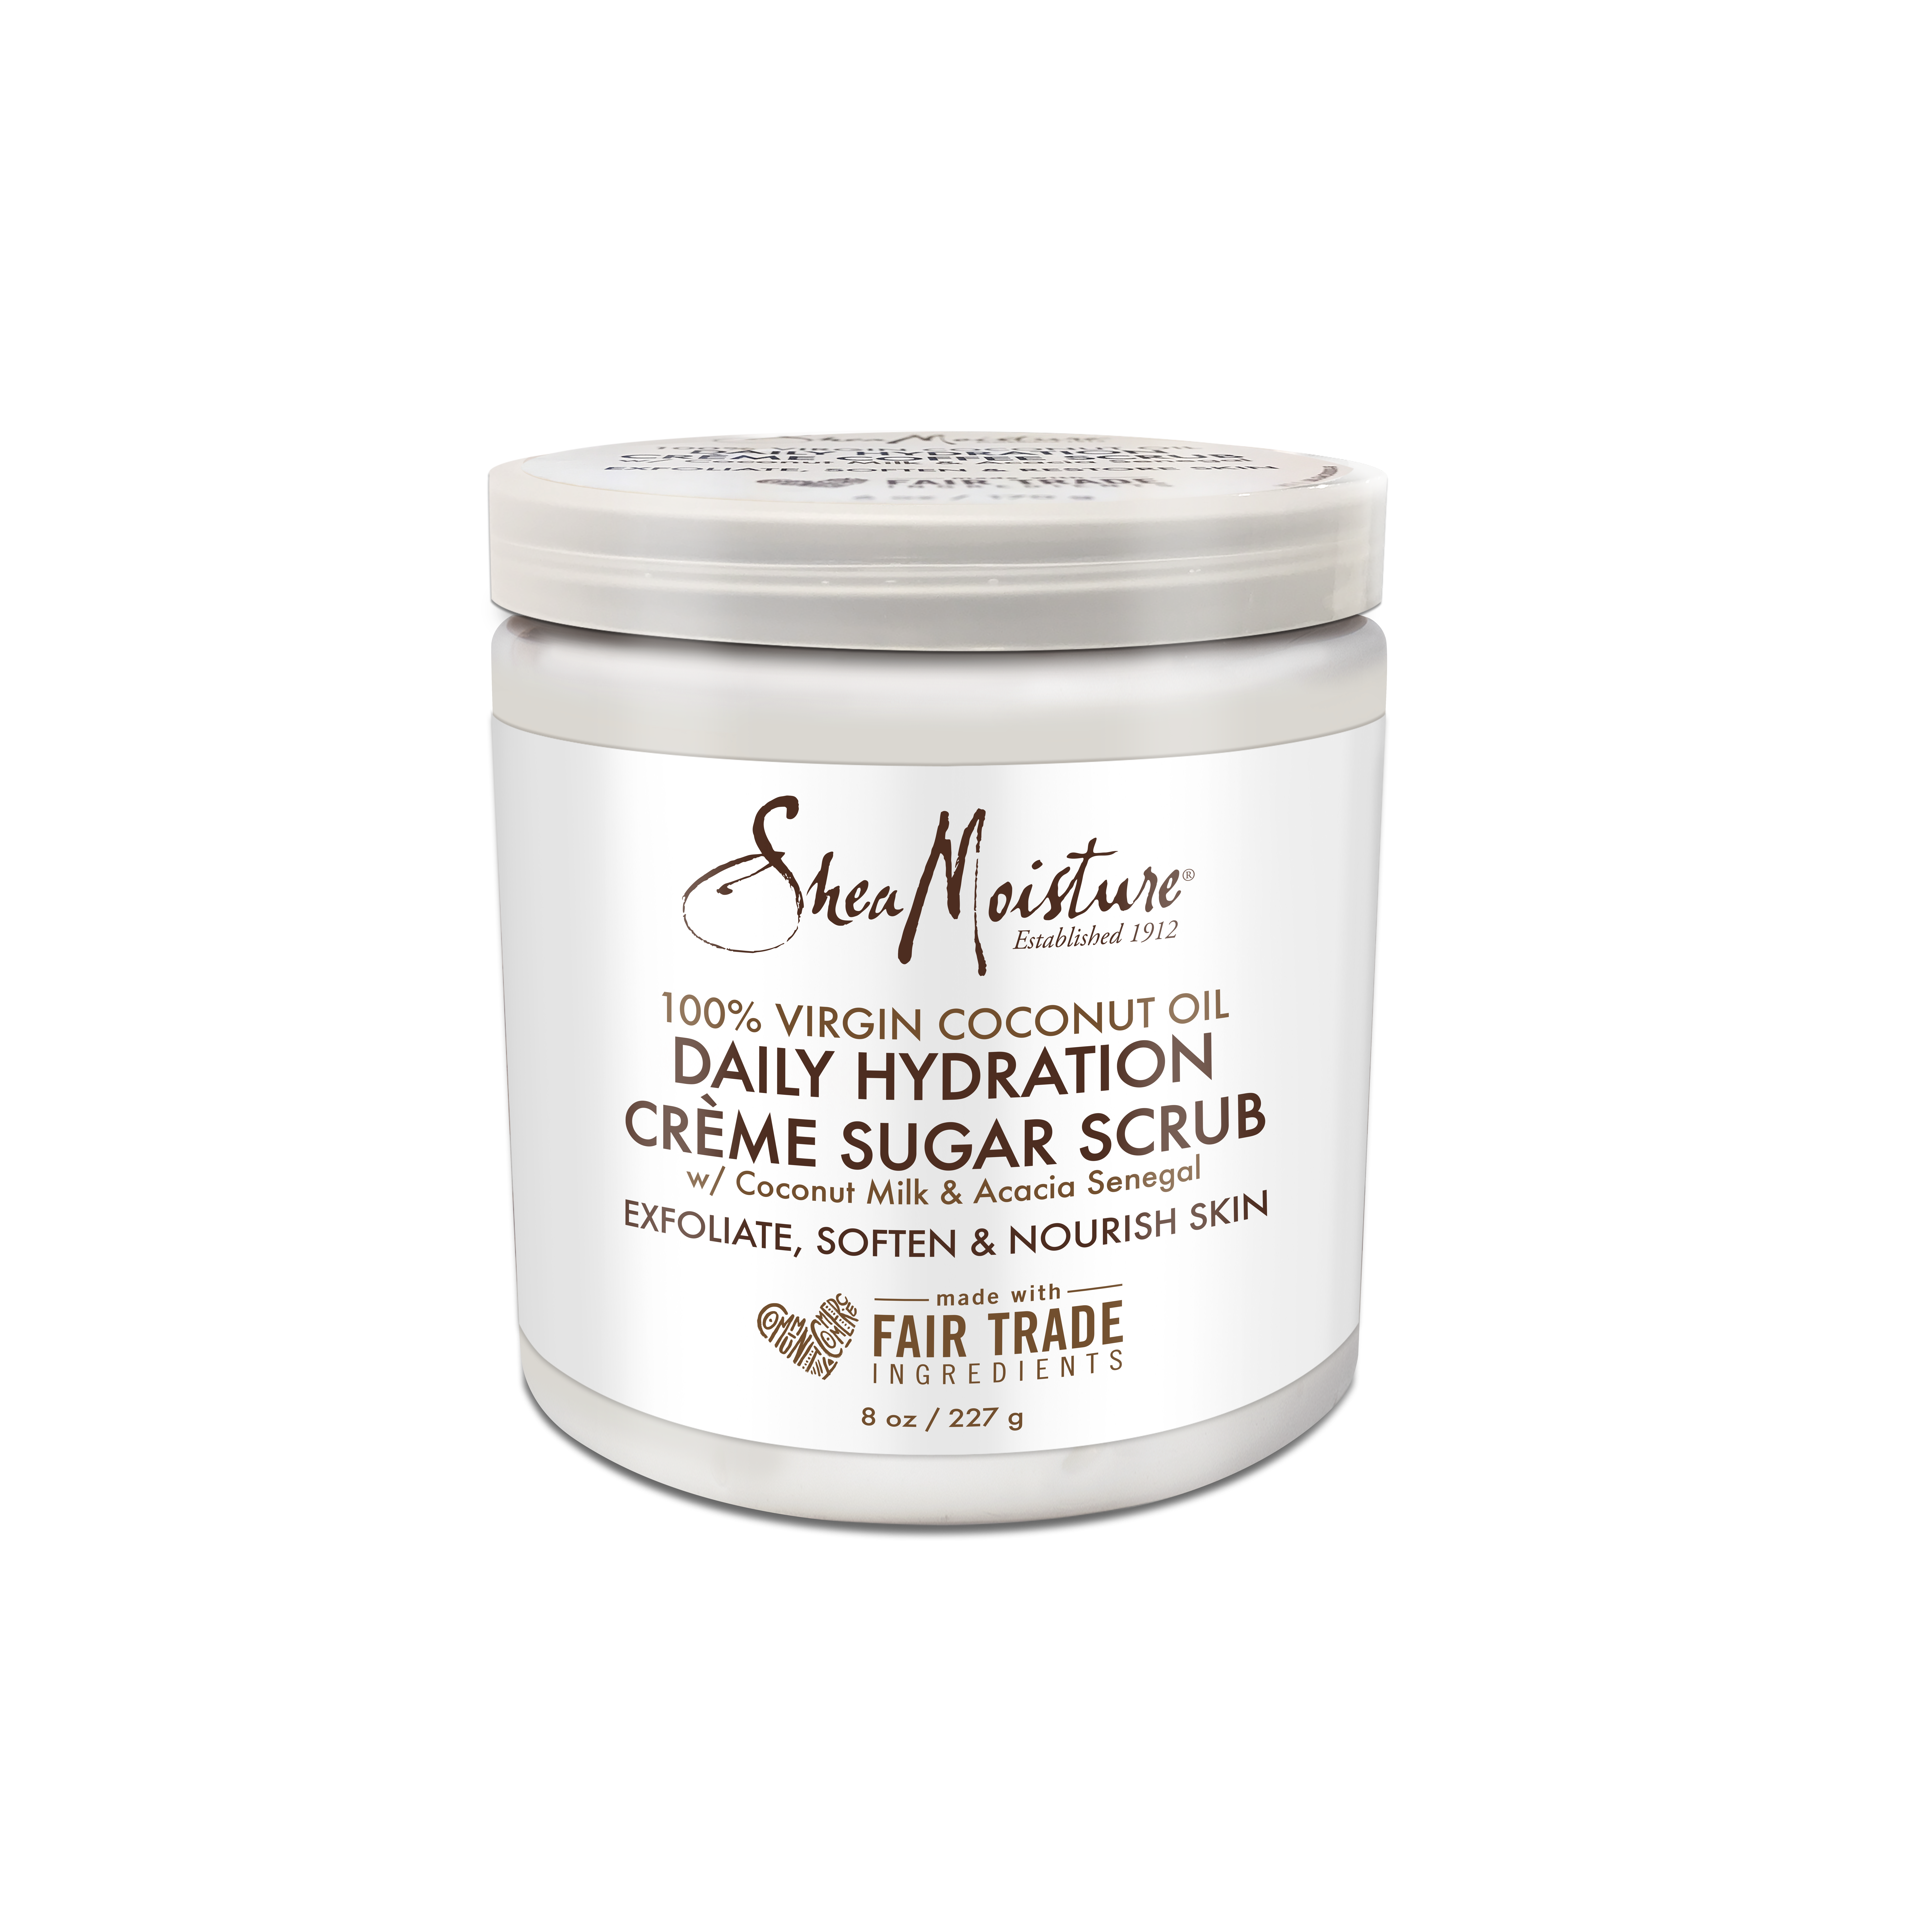 SheaMoisture Virgin Coconut Oil Daily Hydration Creamy Sugar Body Scrub, 8 oz